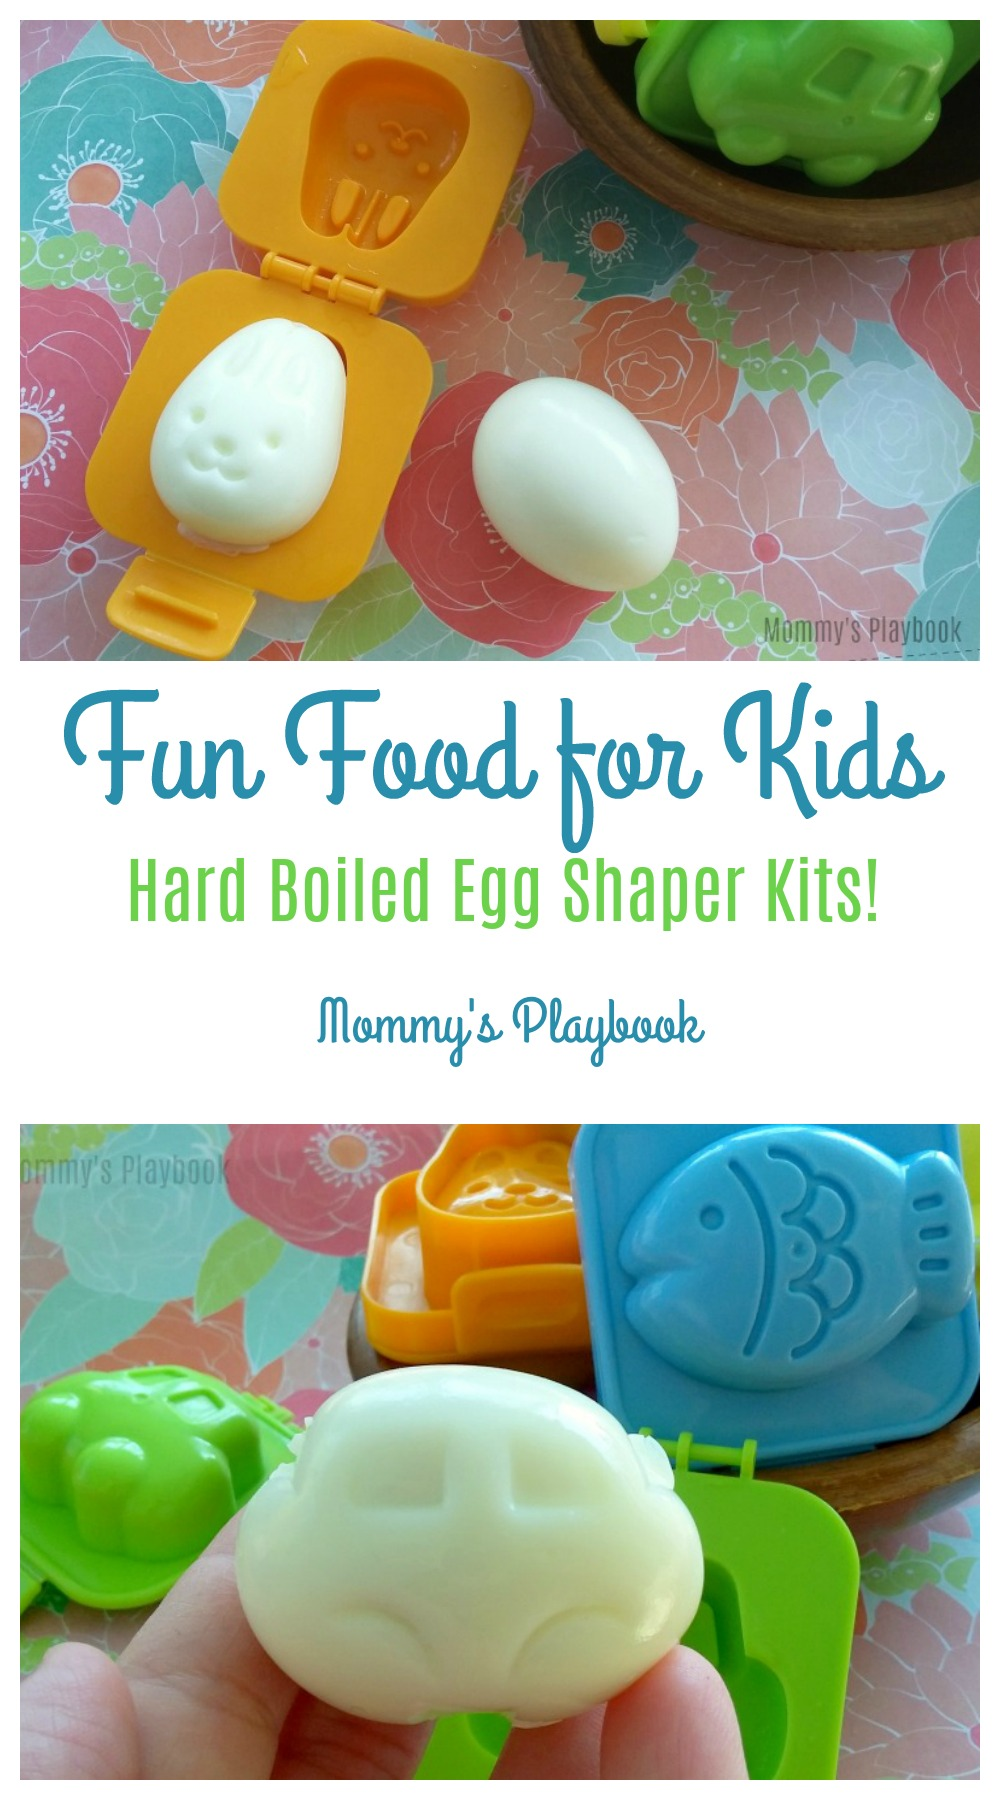 Hard Boiled Egg Shapers #KidsFood #PickyEaters